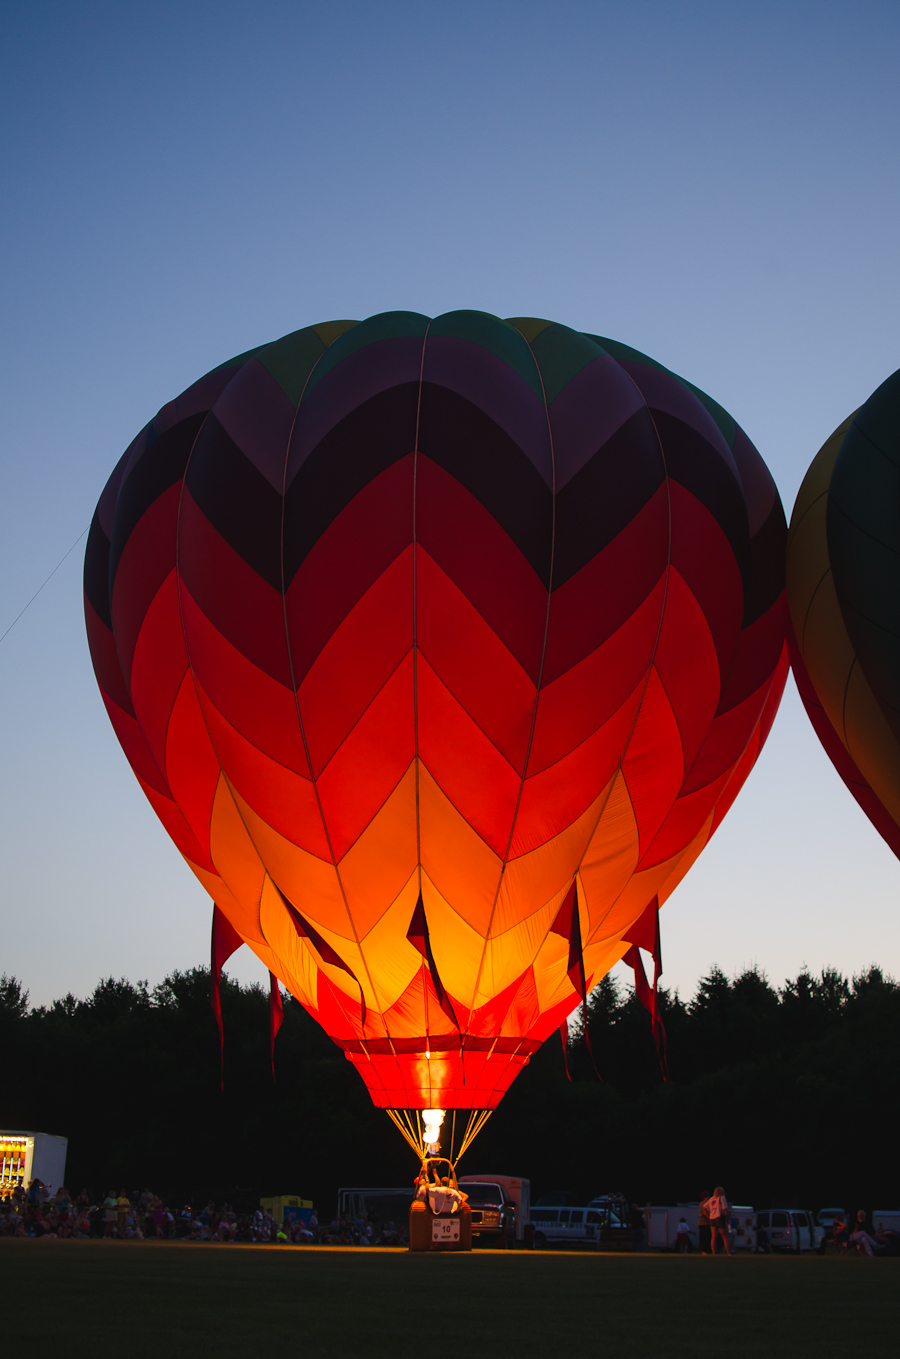 Beautyosaurus Lex- lifestyle-wisconsin-hot air balloon-summer-sunshine